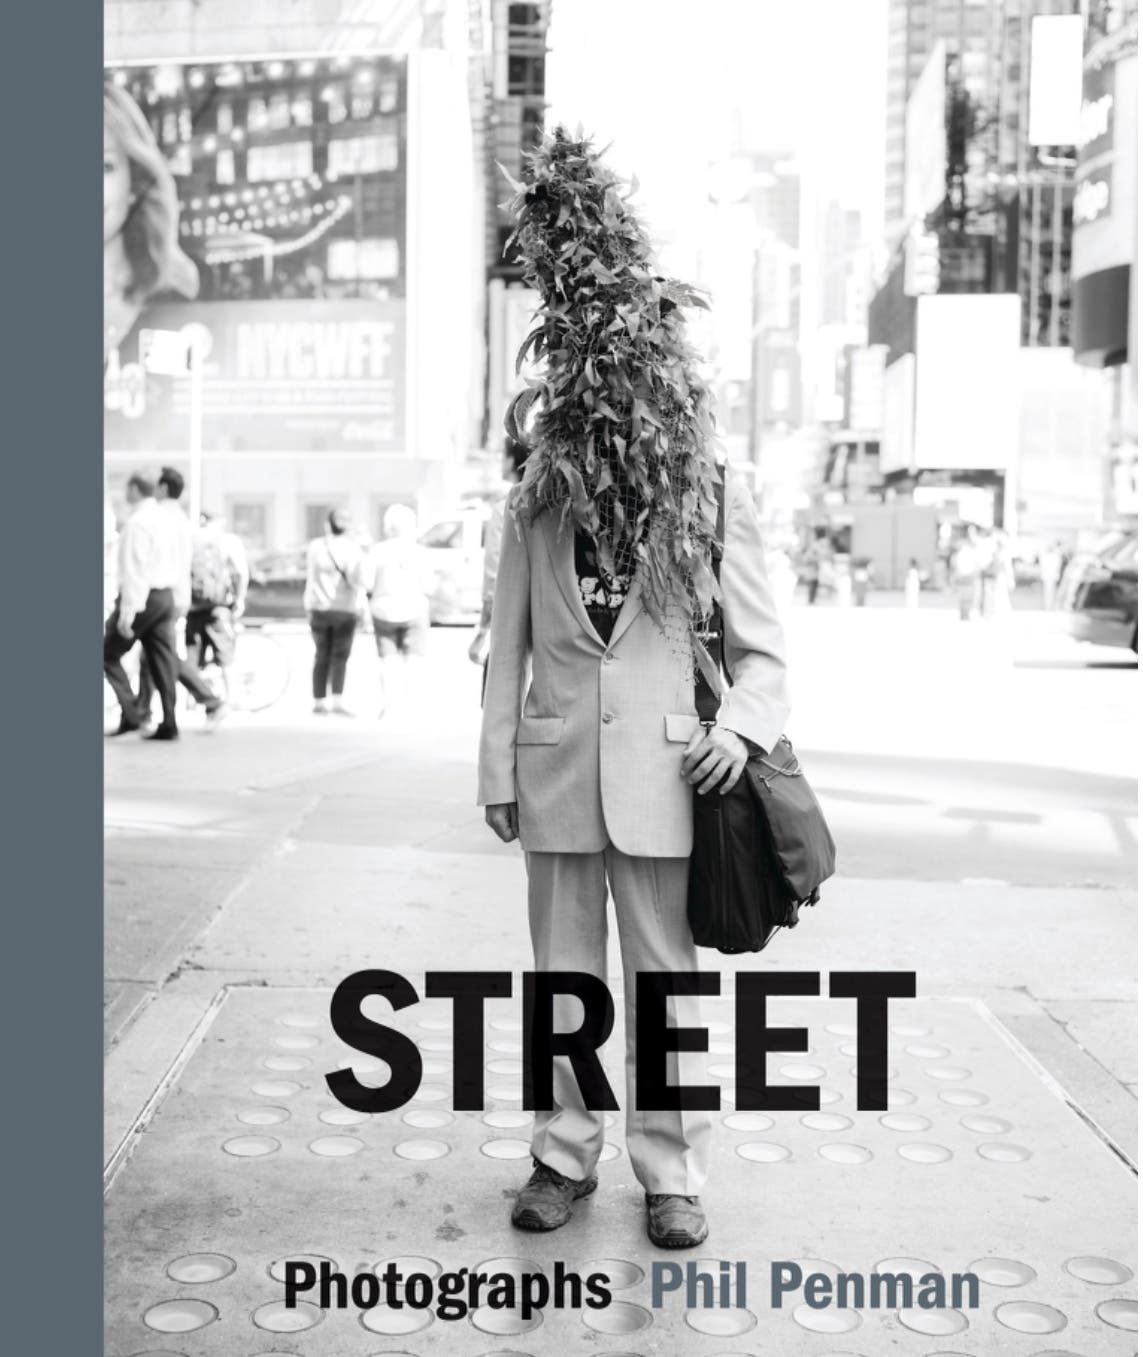 This New Book Is a Beautiful Love Letter to New York Street Photography